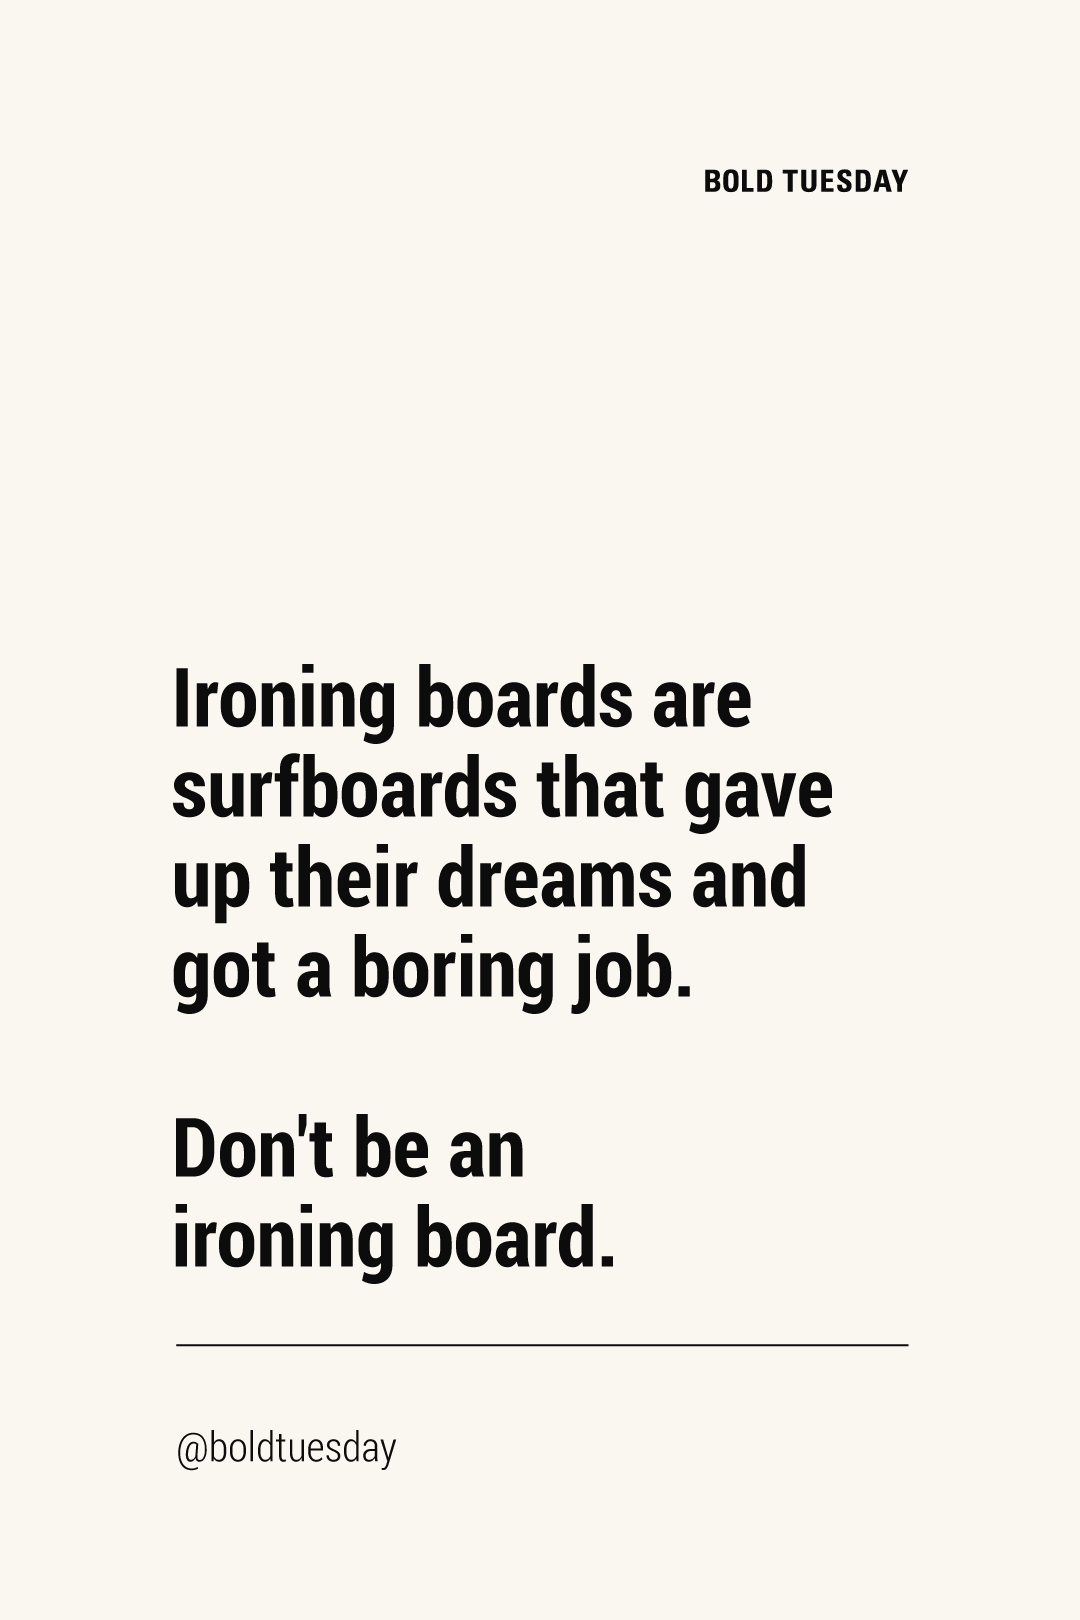 Don T Be An Ironing Board Inspirational Quotes Inspiring Quotes Self Care Self Love Self Re Funny Travel Quotes Adventure Quotes Best Travel Quotes